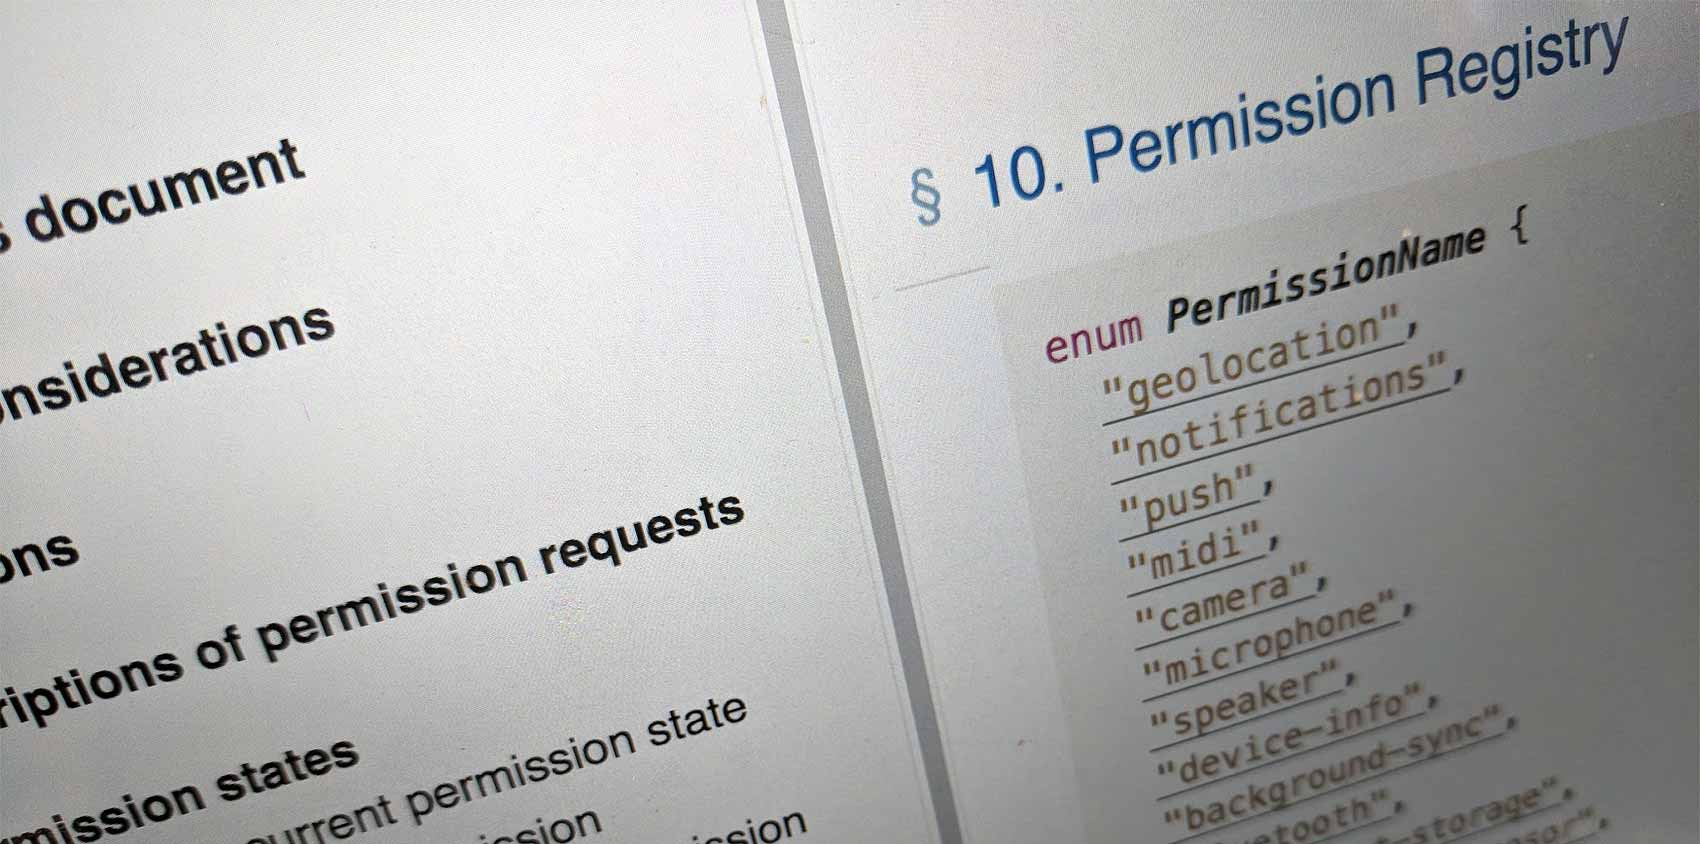 Thinking about permissions on the web | Sally Lait